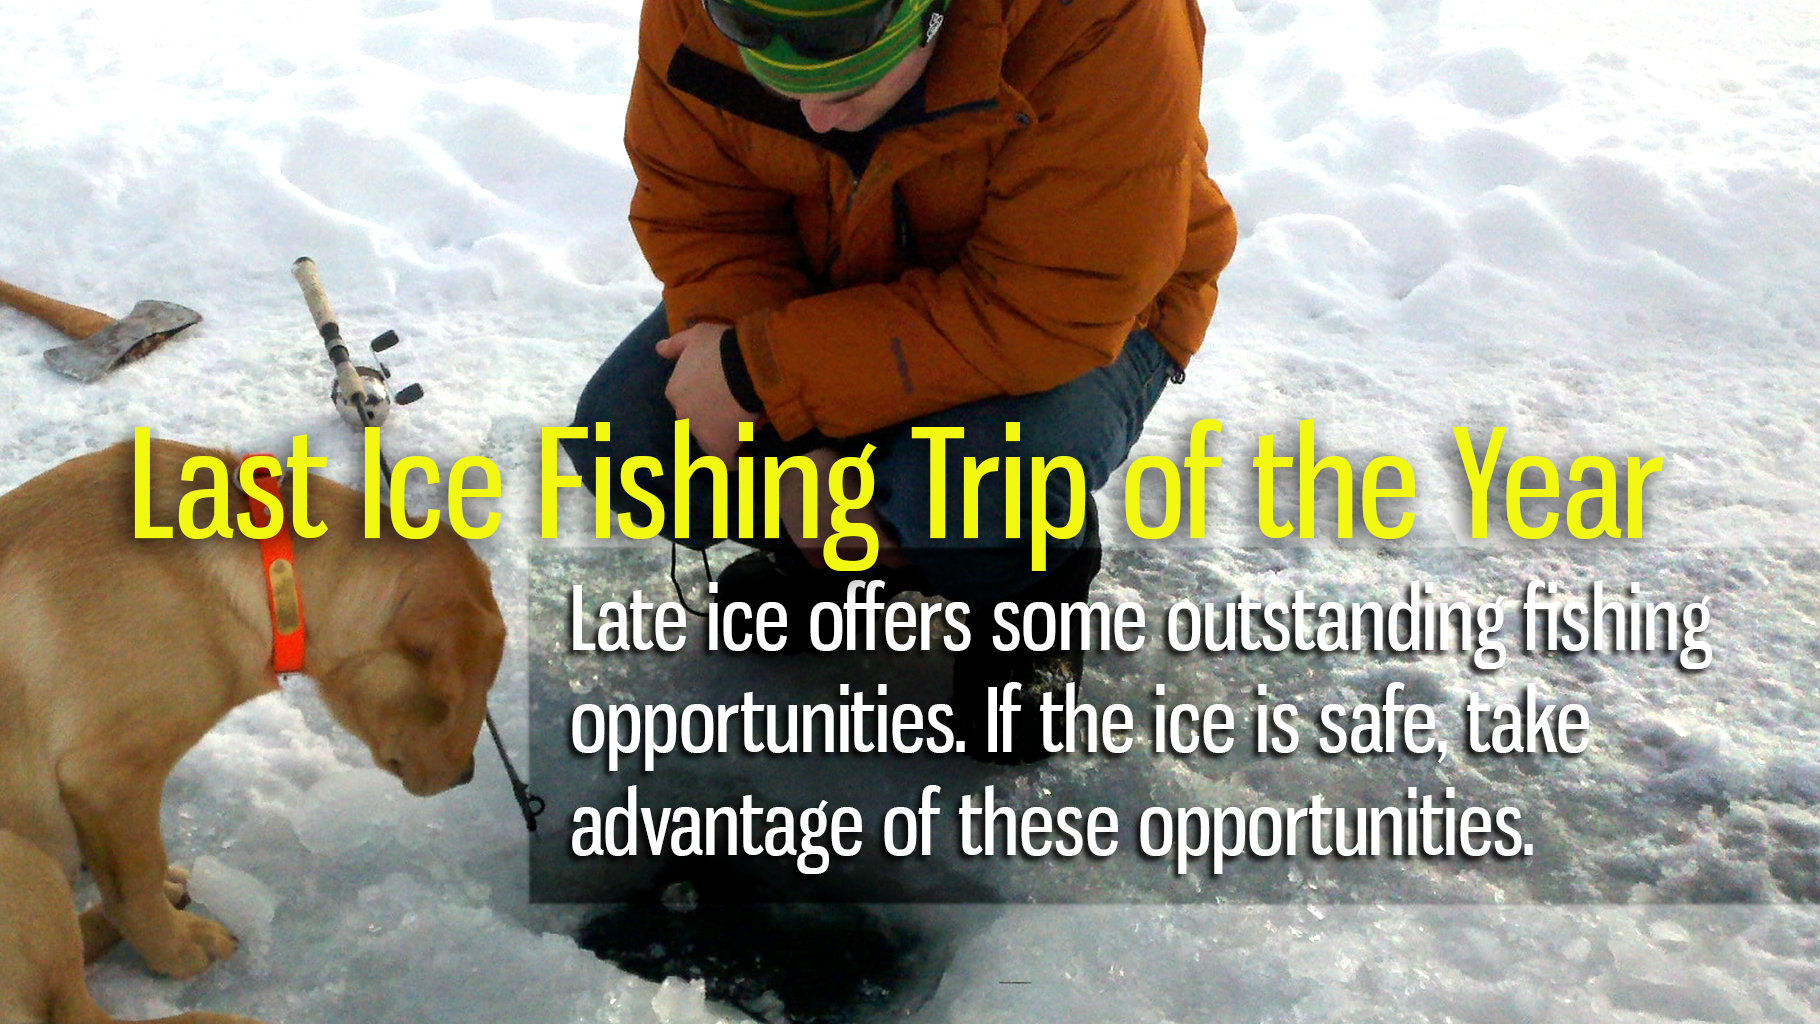 Last Ice Fishing Trip of the Year